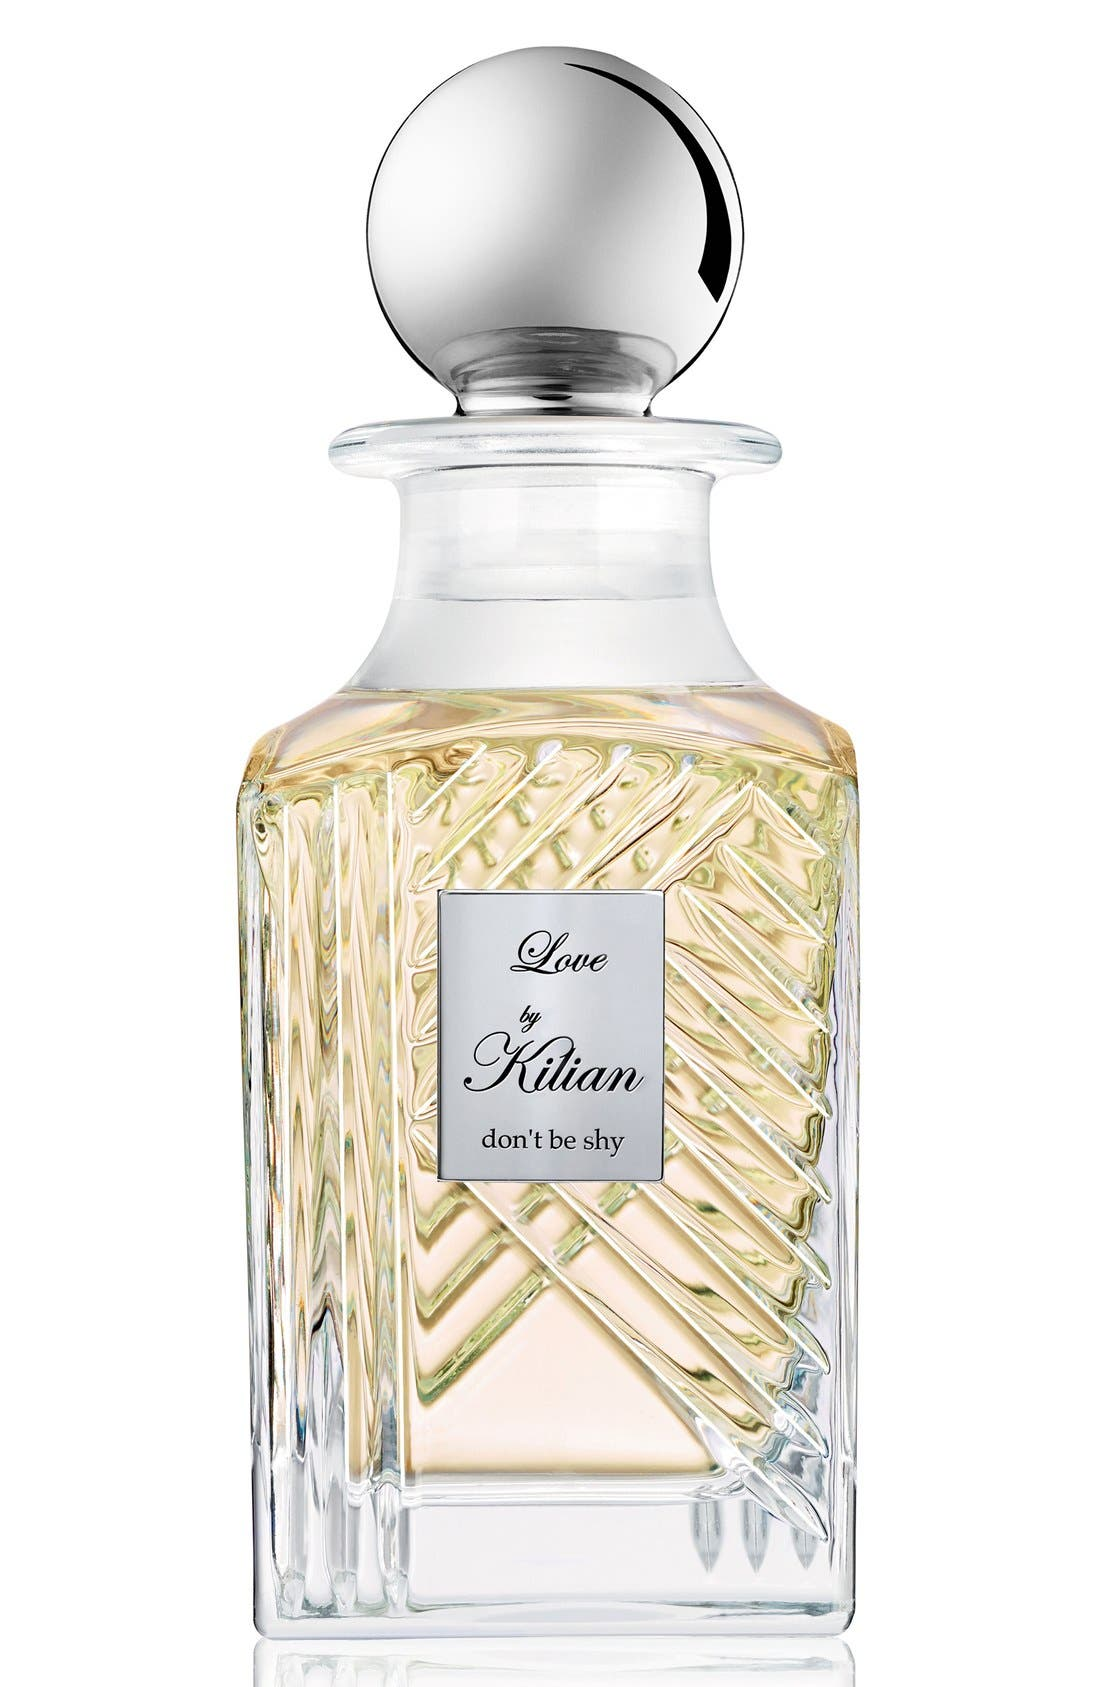 Kilian 'L'Oeuvre Noire - Love, don't be shy' Mini Fragrance Carafe